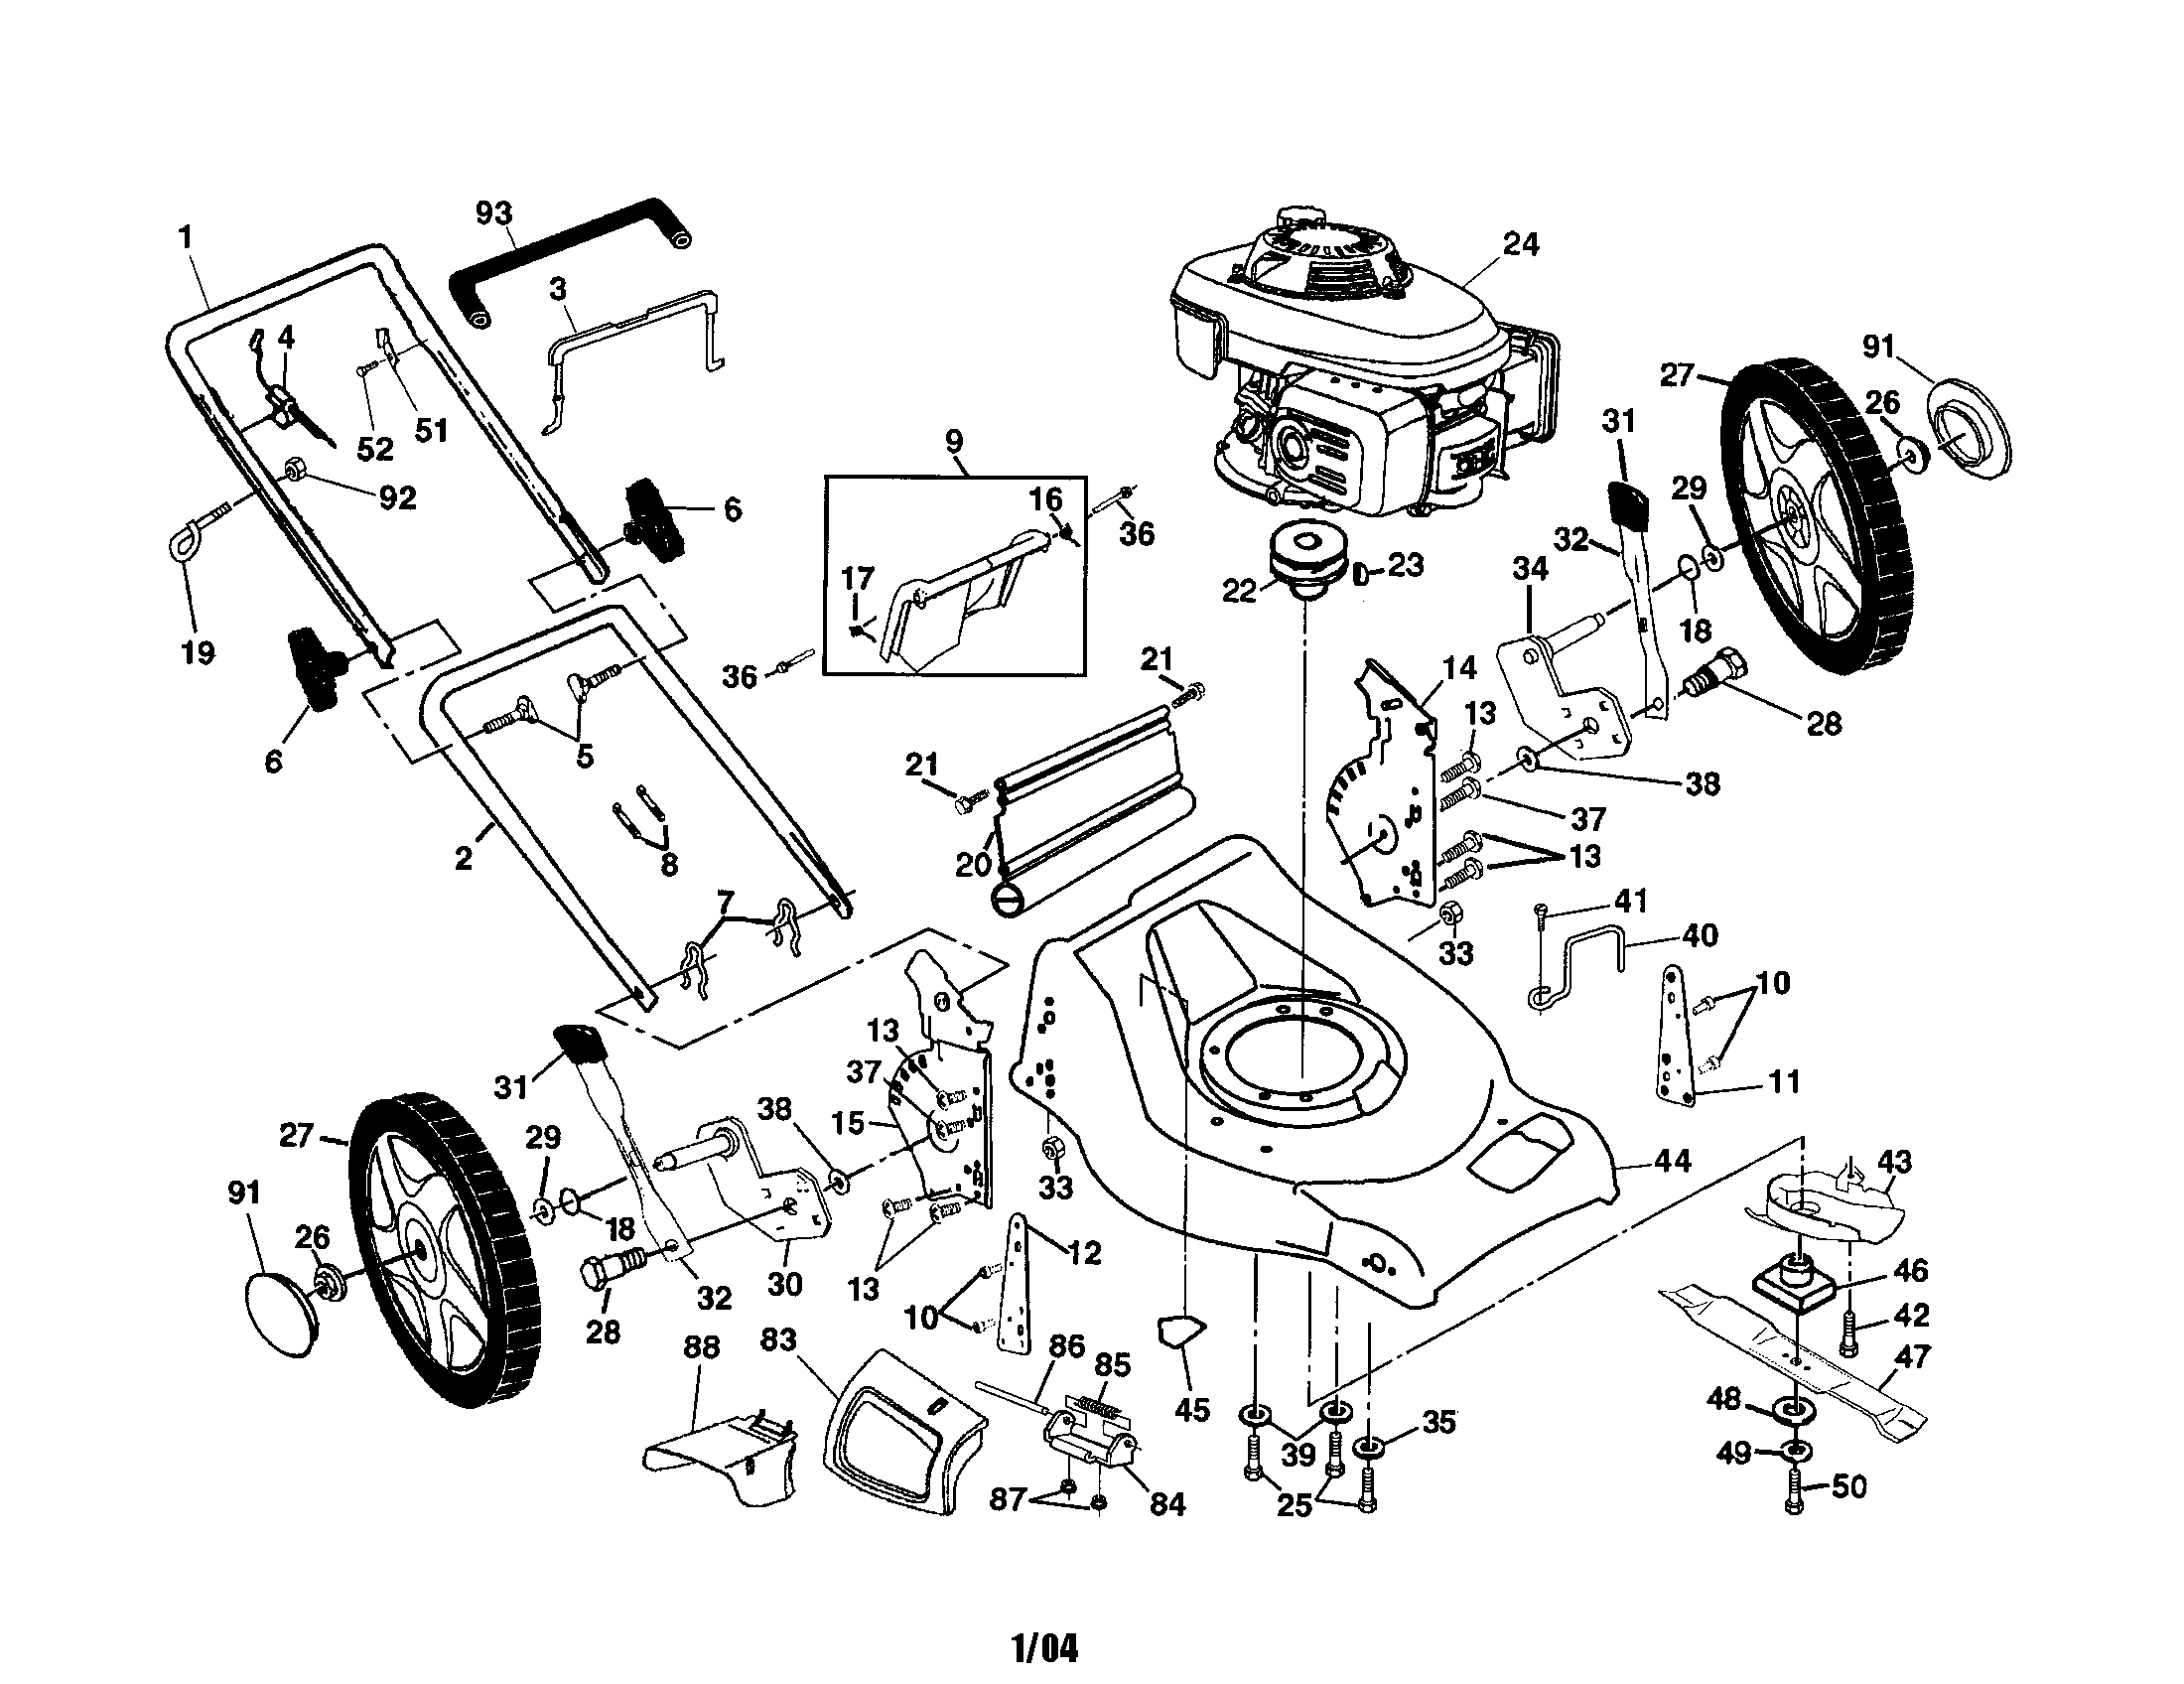 Spare Parts For Husqvarna Lawn Mowers